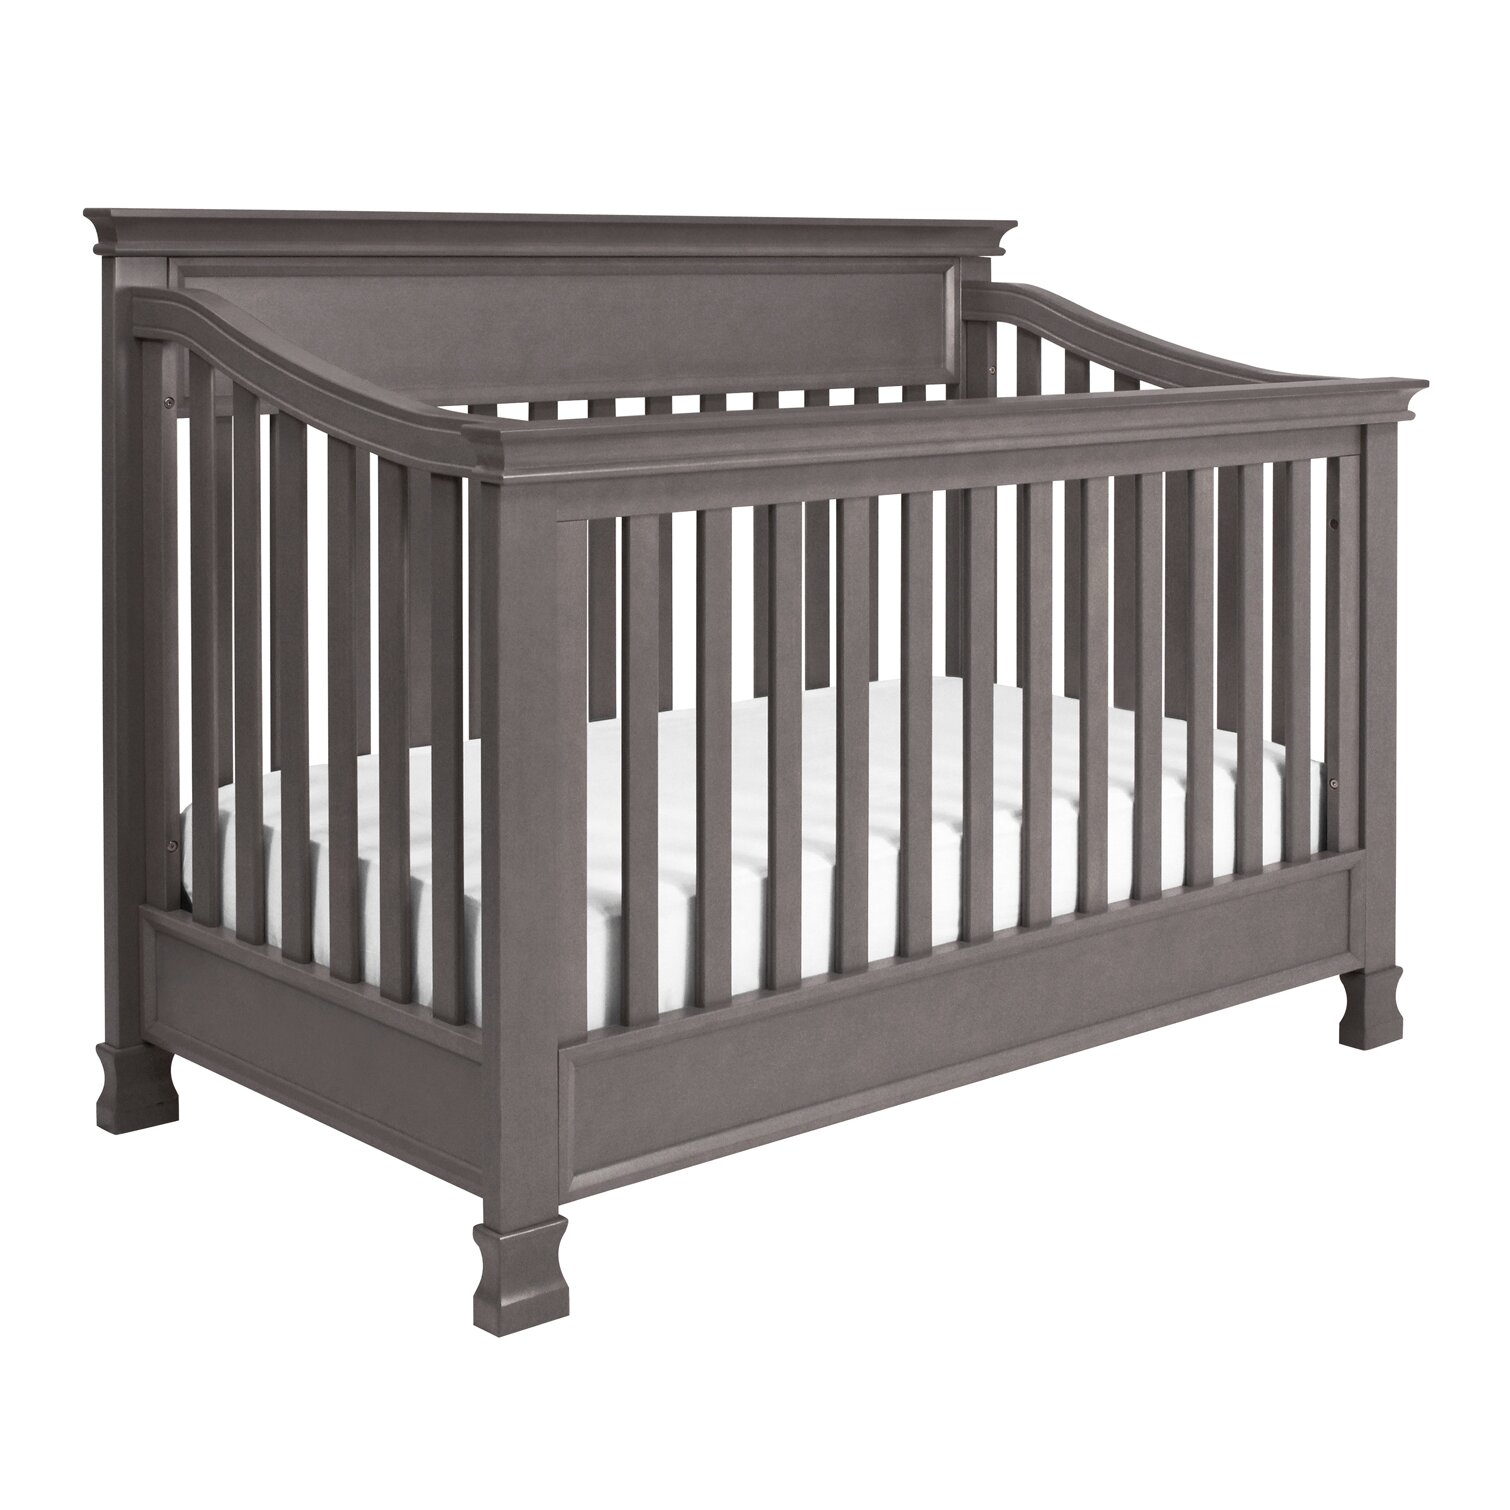 Foothill 4 In 1 Convertible Crib With Toddler Rail Html Autos Weblog